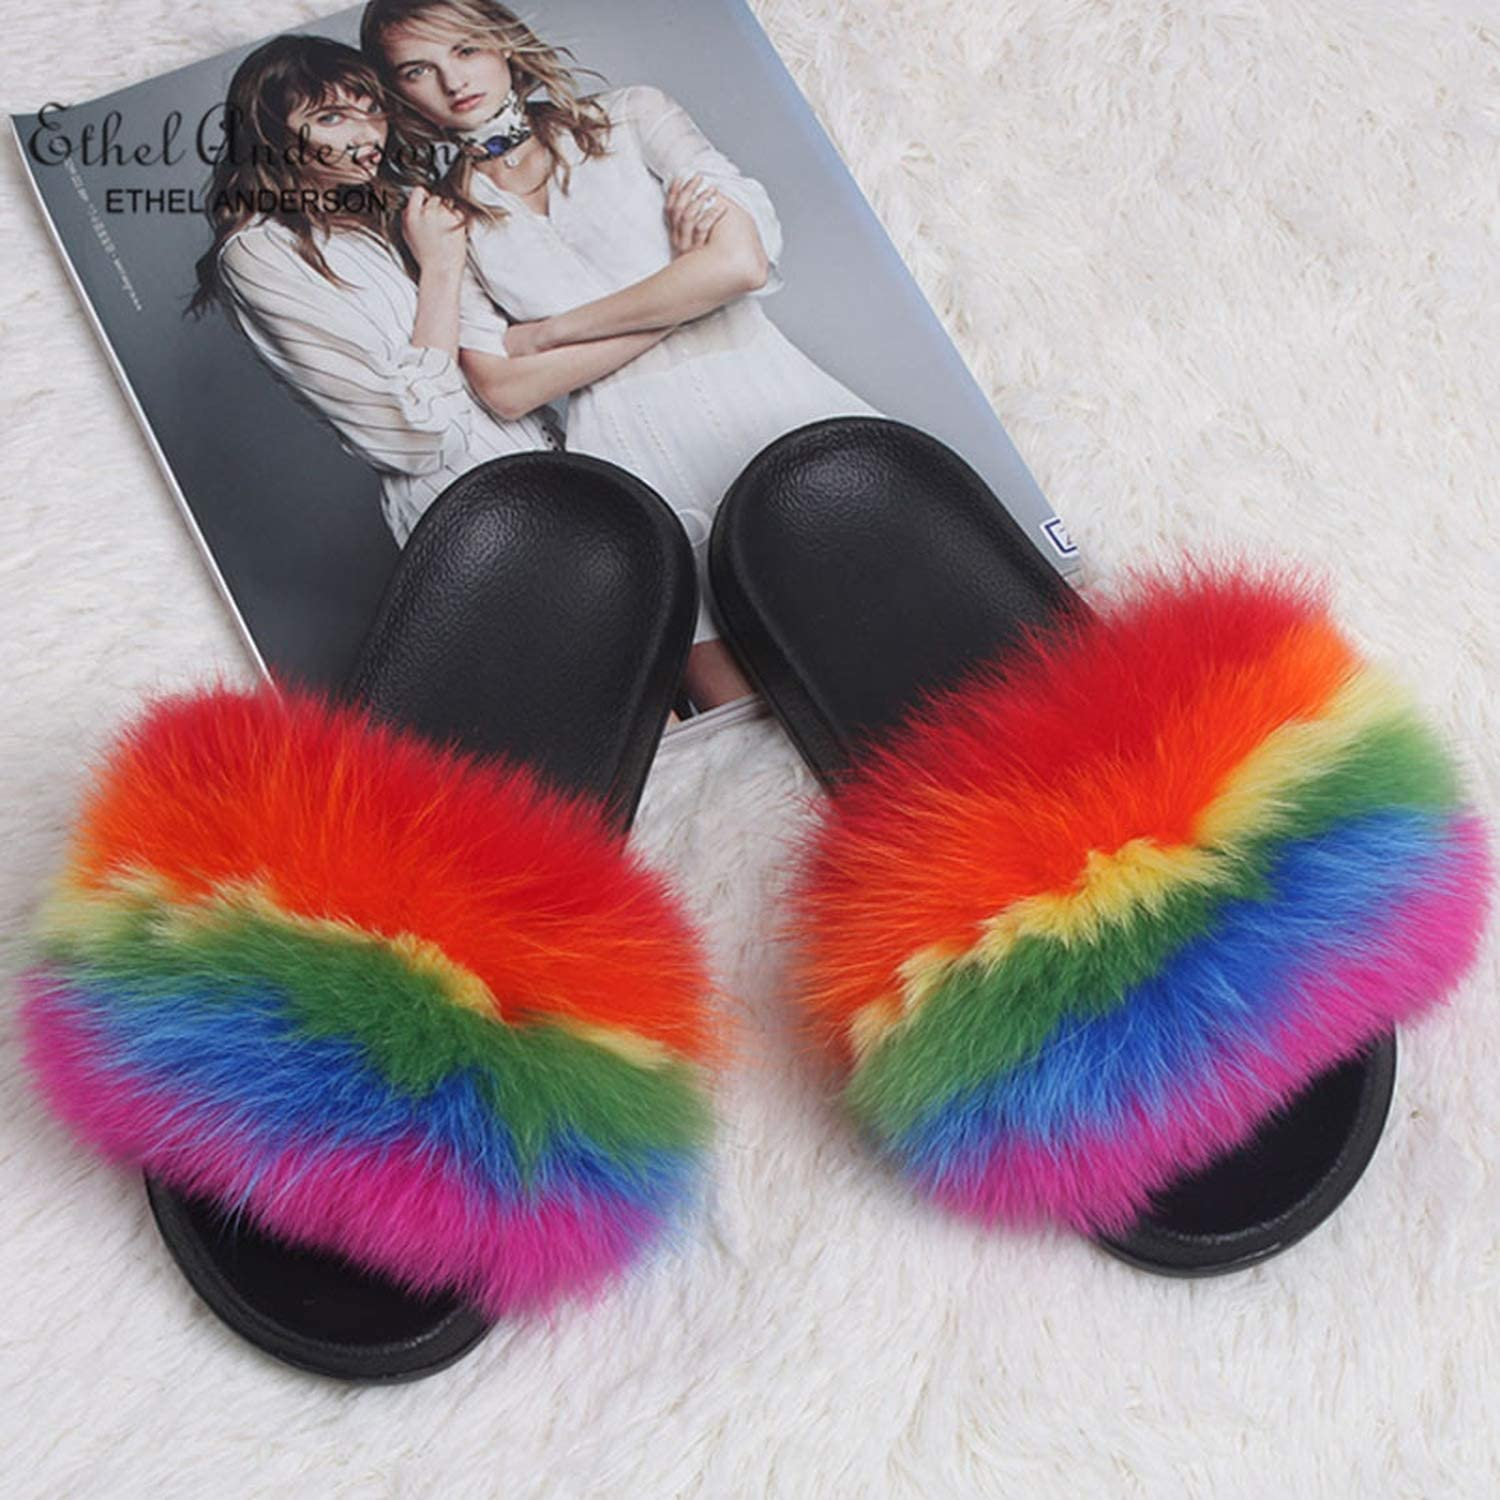 Fashion Real Raccoon Fur Slippers Slides Indoor Flip Flops Casual Vogue Summer Fox Fur Sandals Vogue Plush shoes